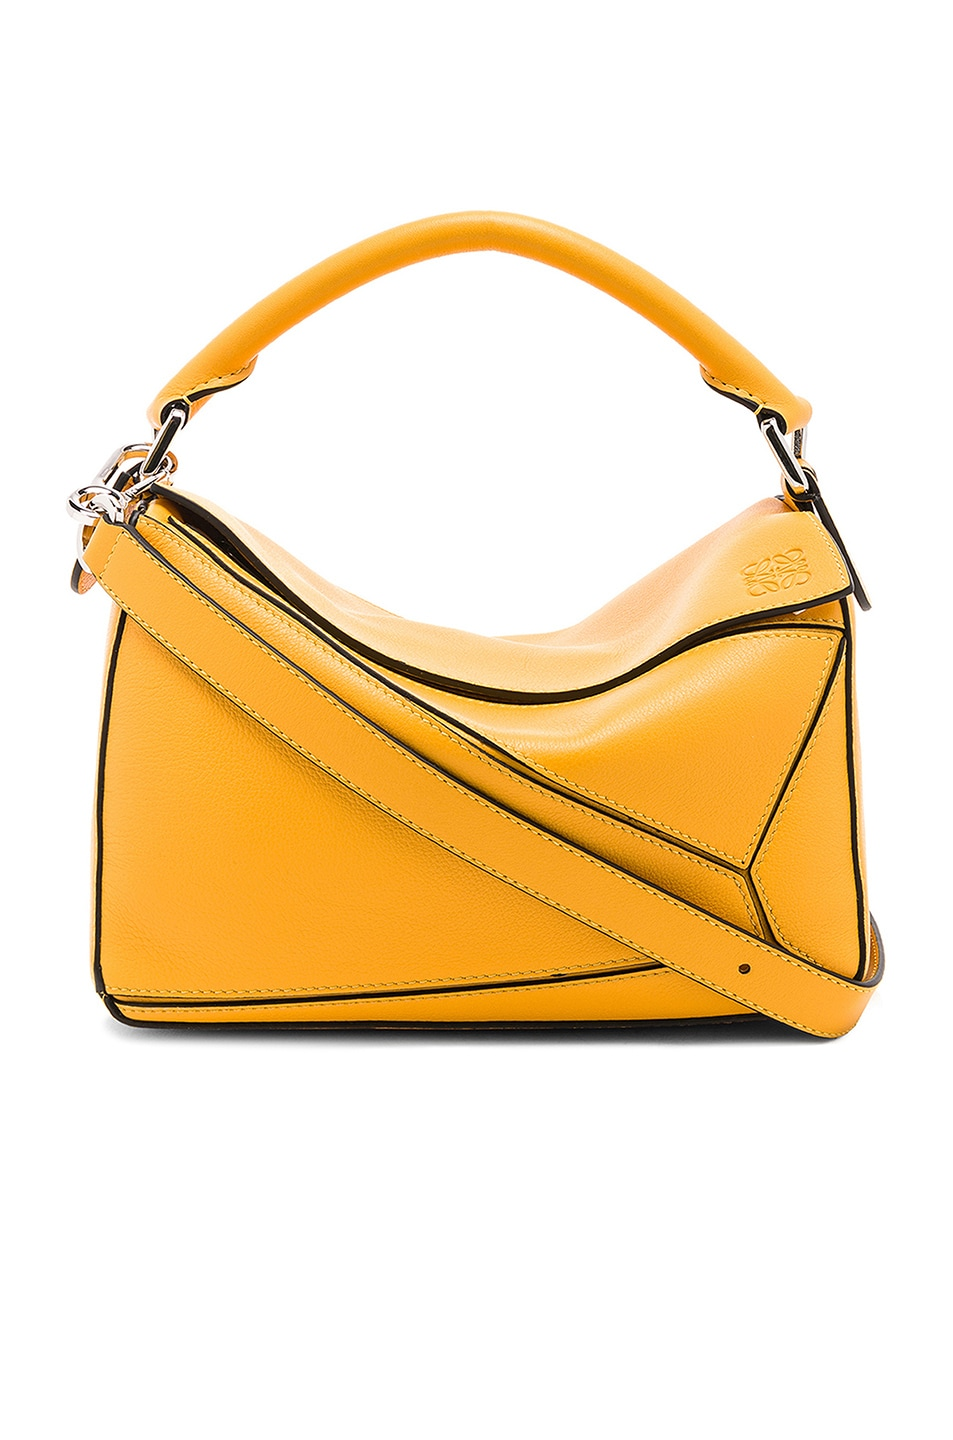 60a64e76bf Image 1 of Loewe Puzzle Small Bag in Yellow Mango